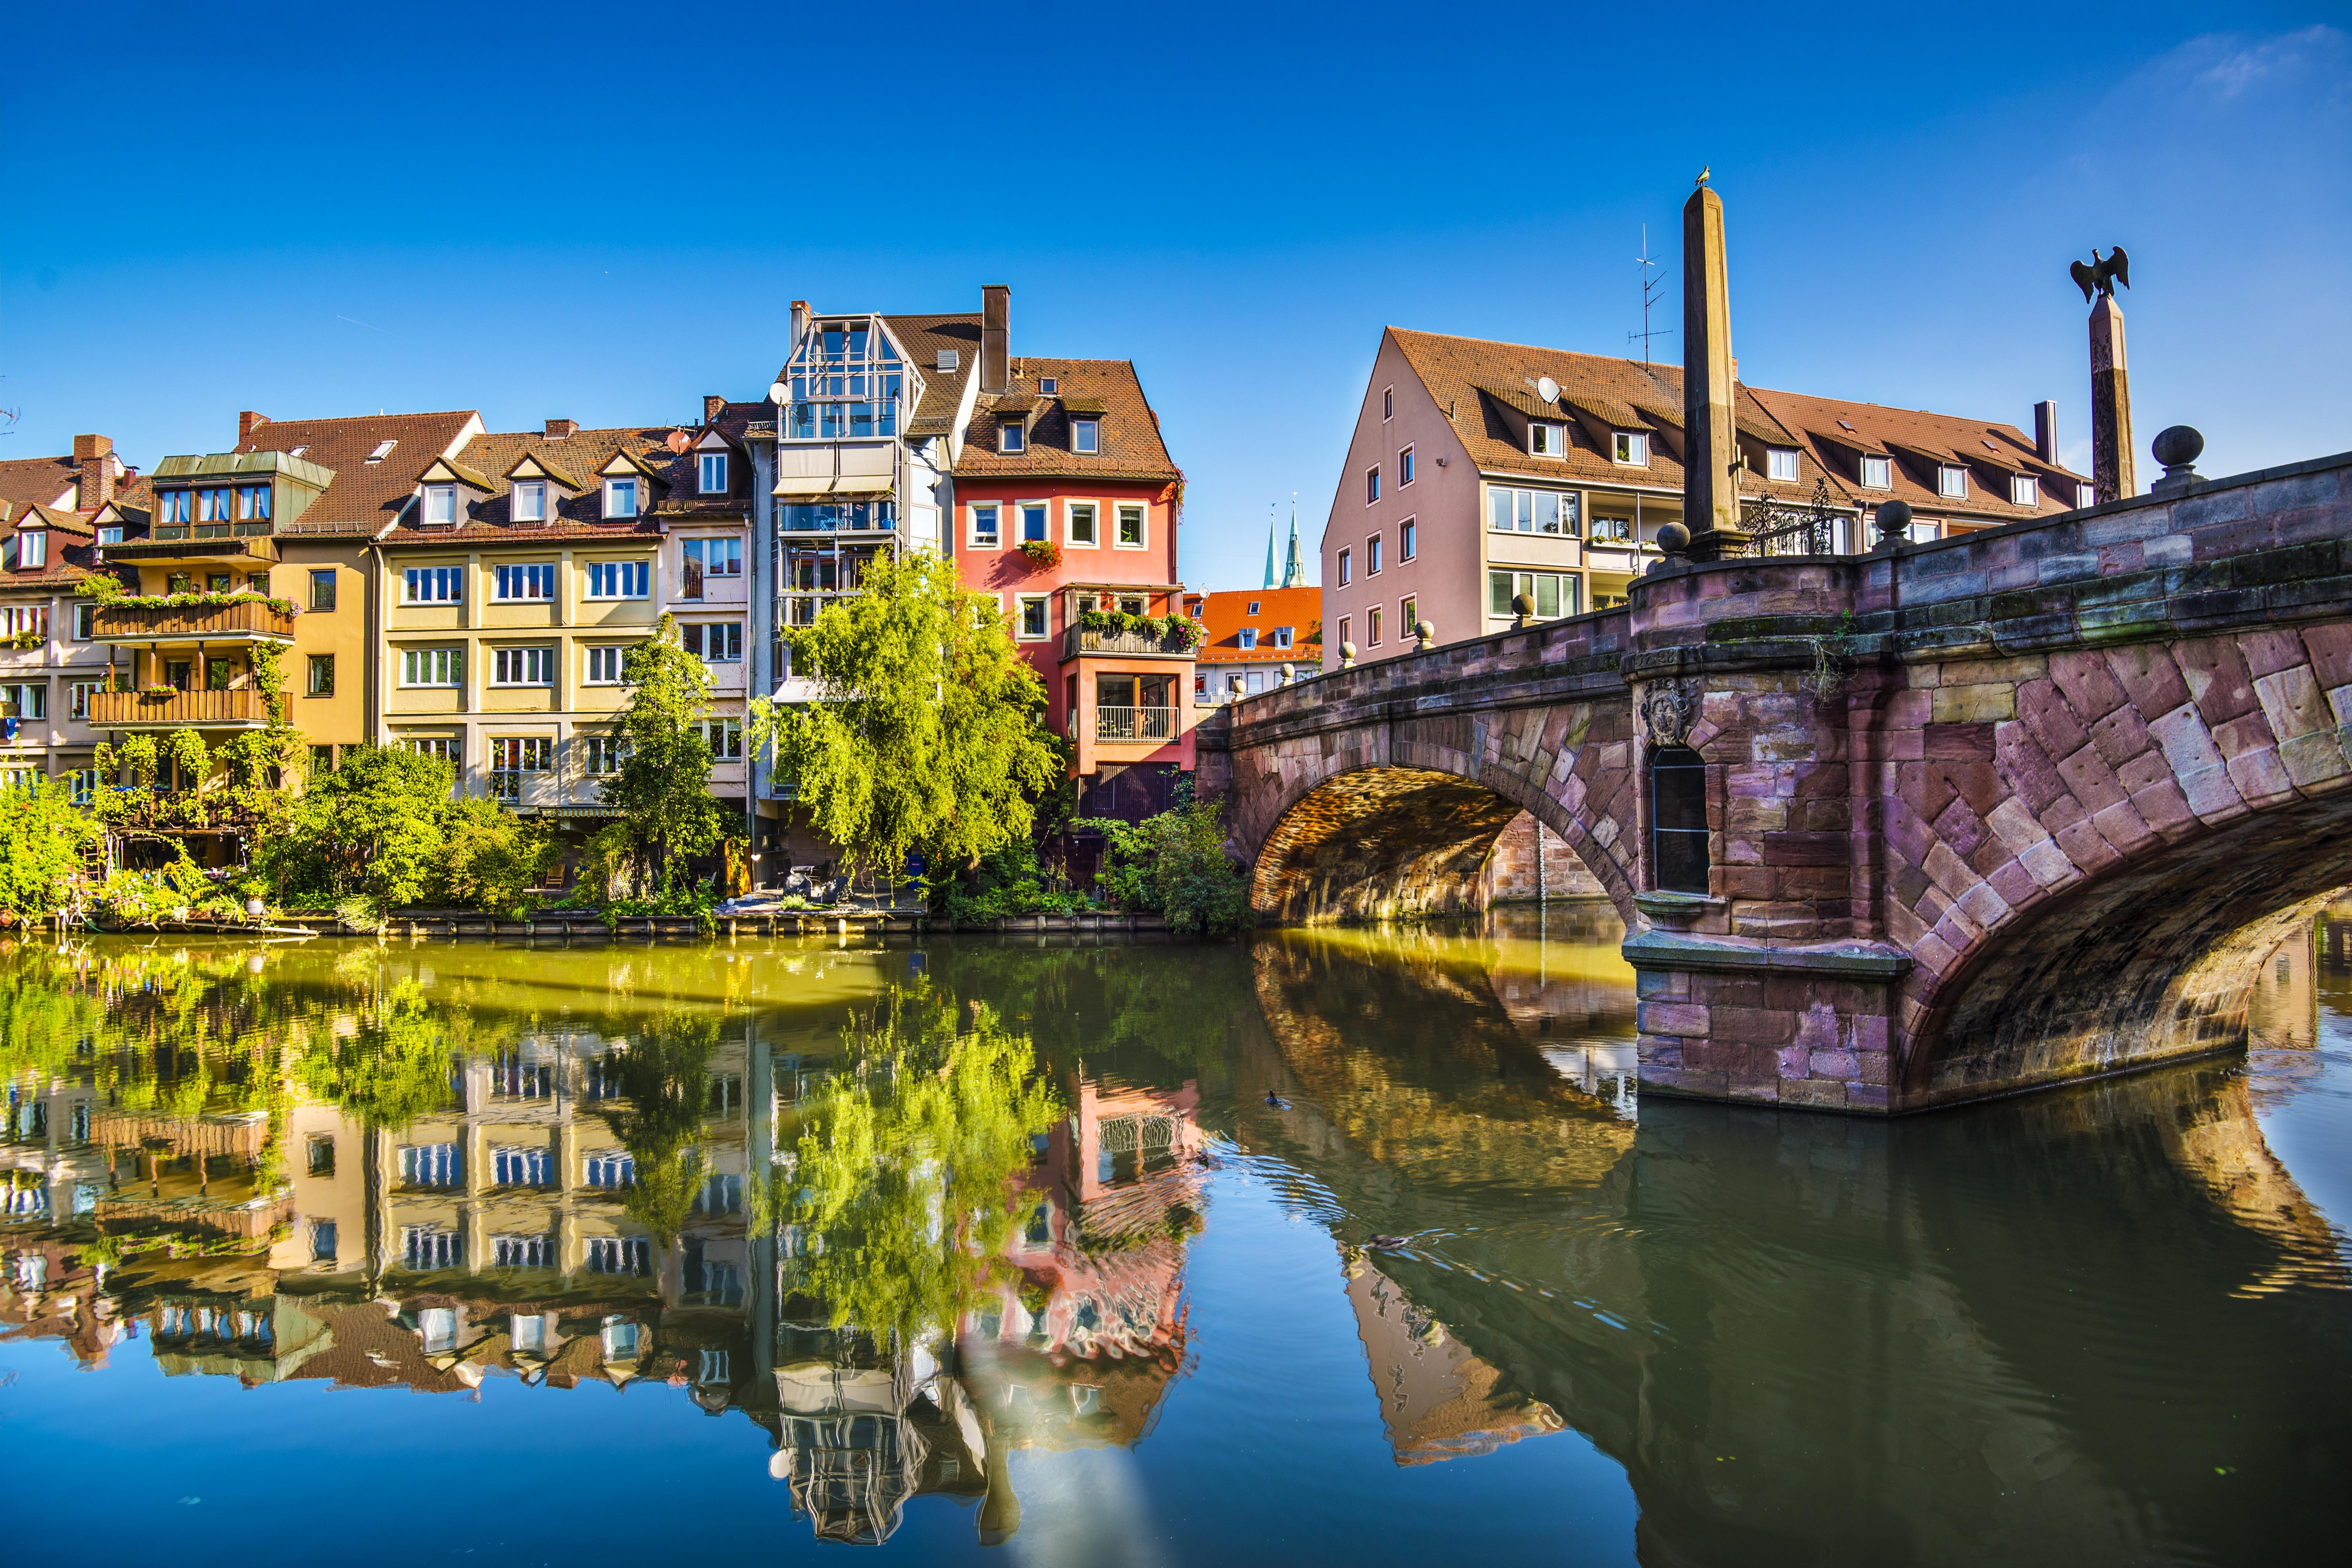 How to Spend 1 Day in Nuremberg